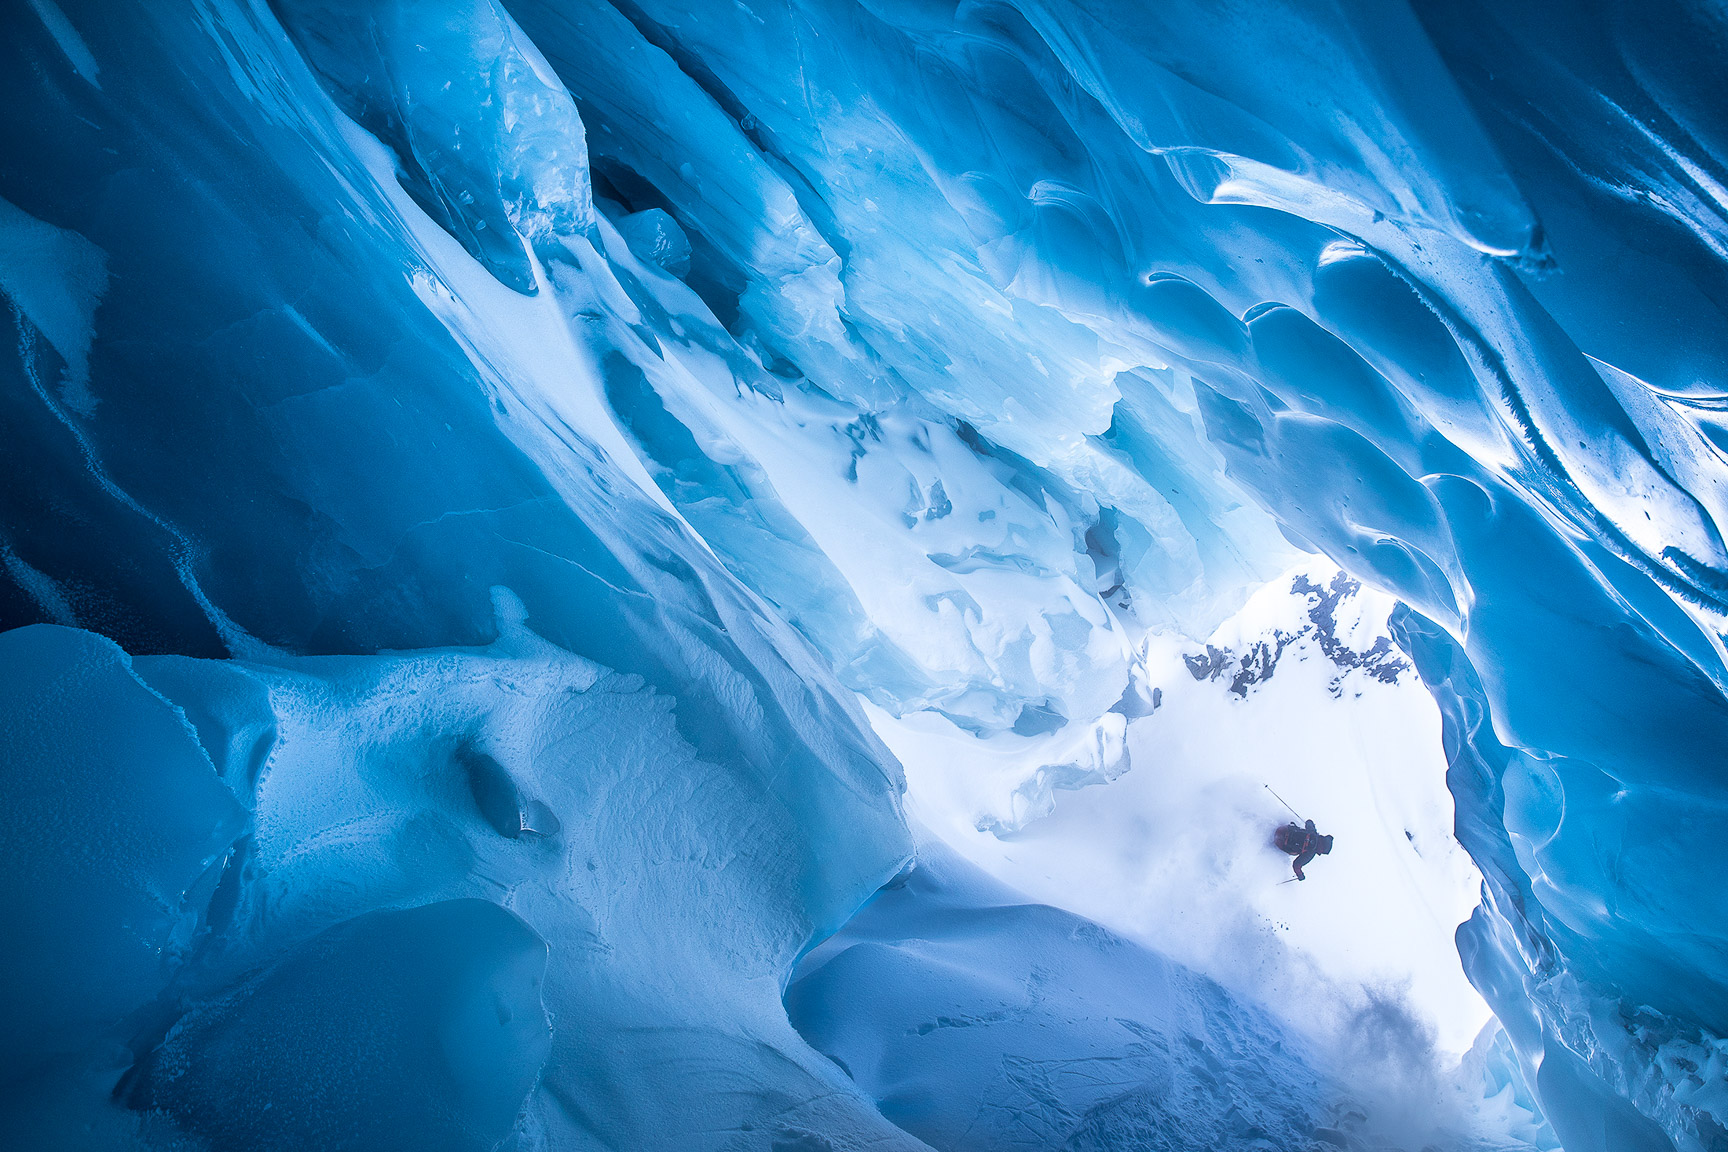 After a hot summer with a lot of melting, this ice cave opened up big enough last season to ski through. Getting this shot of Santiago was my first and last time in it. This summer it caved in and is there no more. -- Oskar Enander